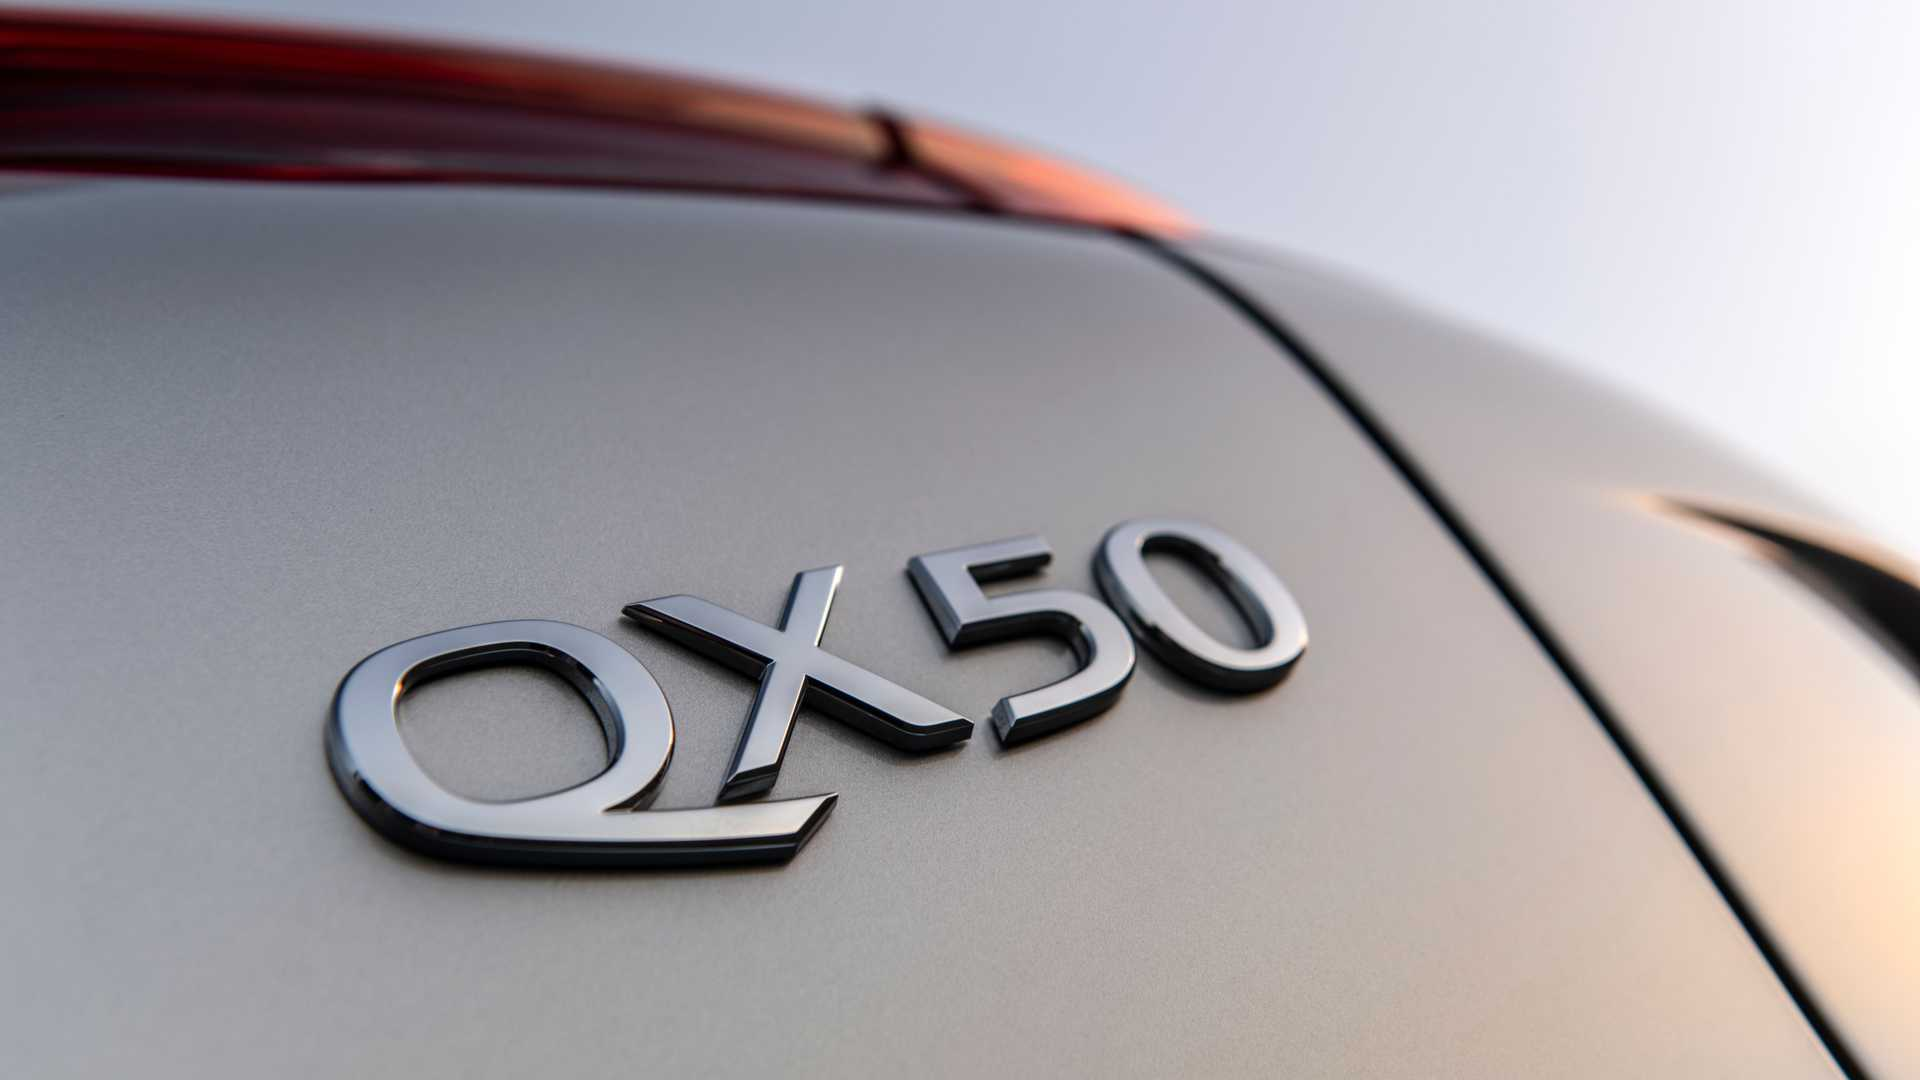 2021 Infiniti QX50 Badge